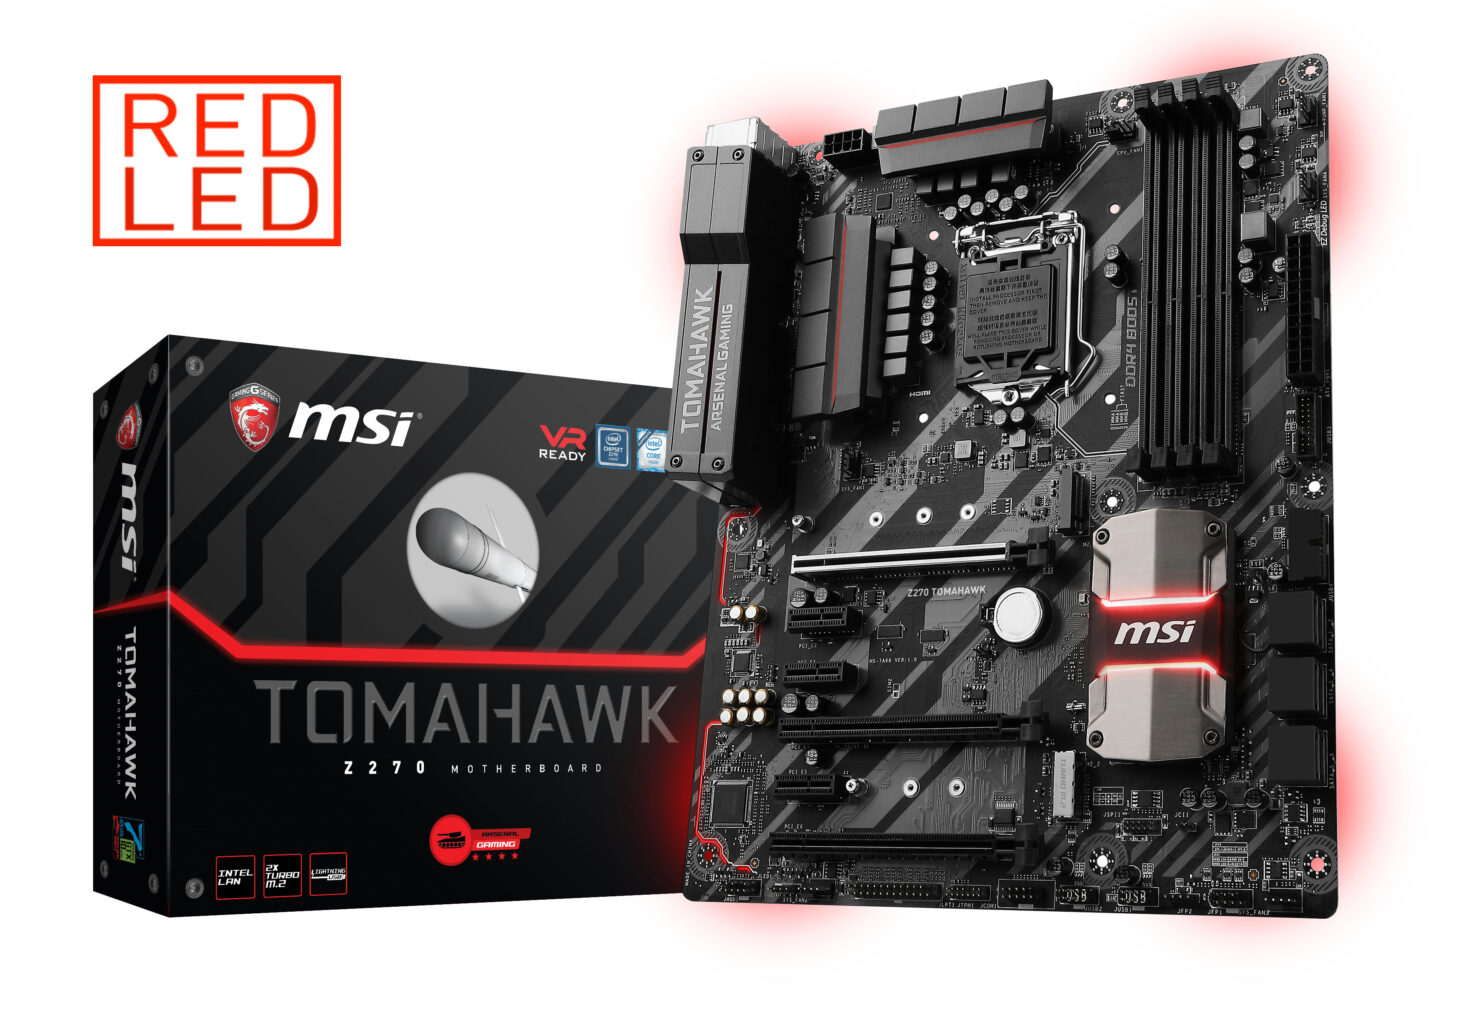 msi-z270_tomahawk-product_picture-box